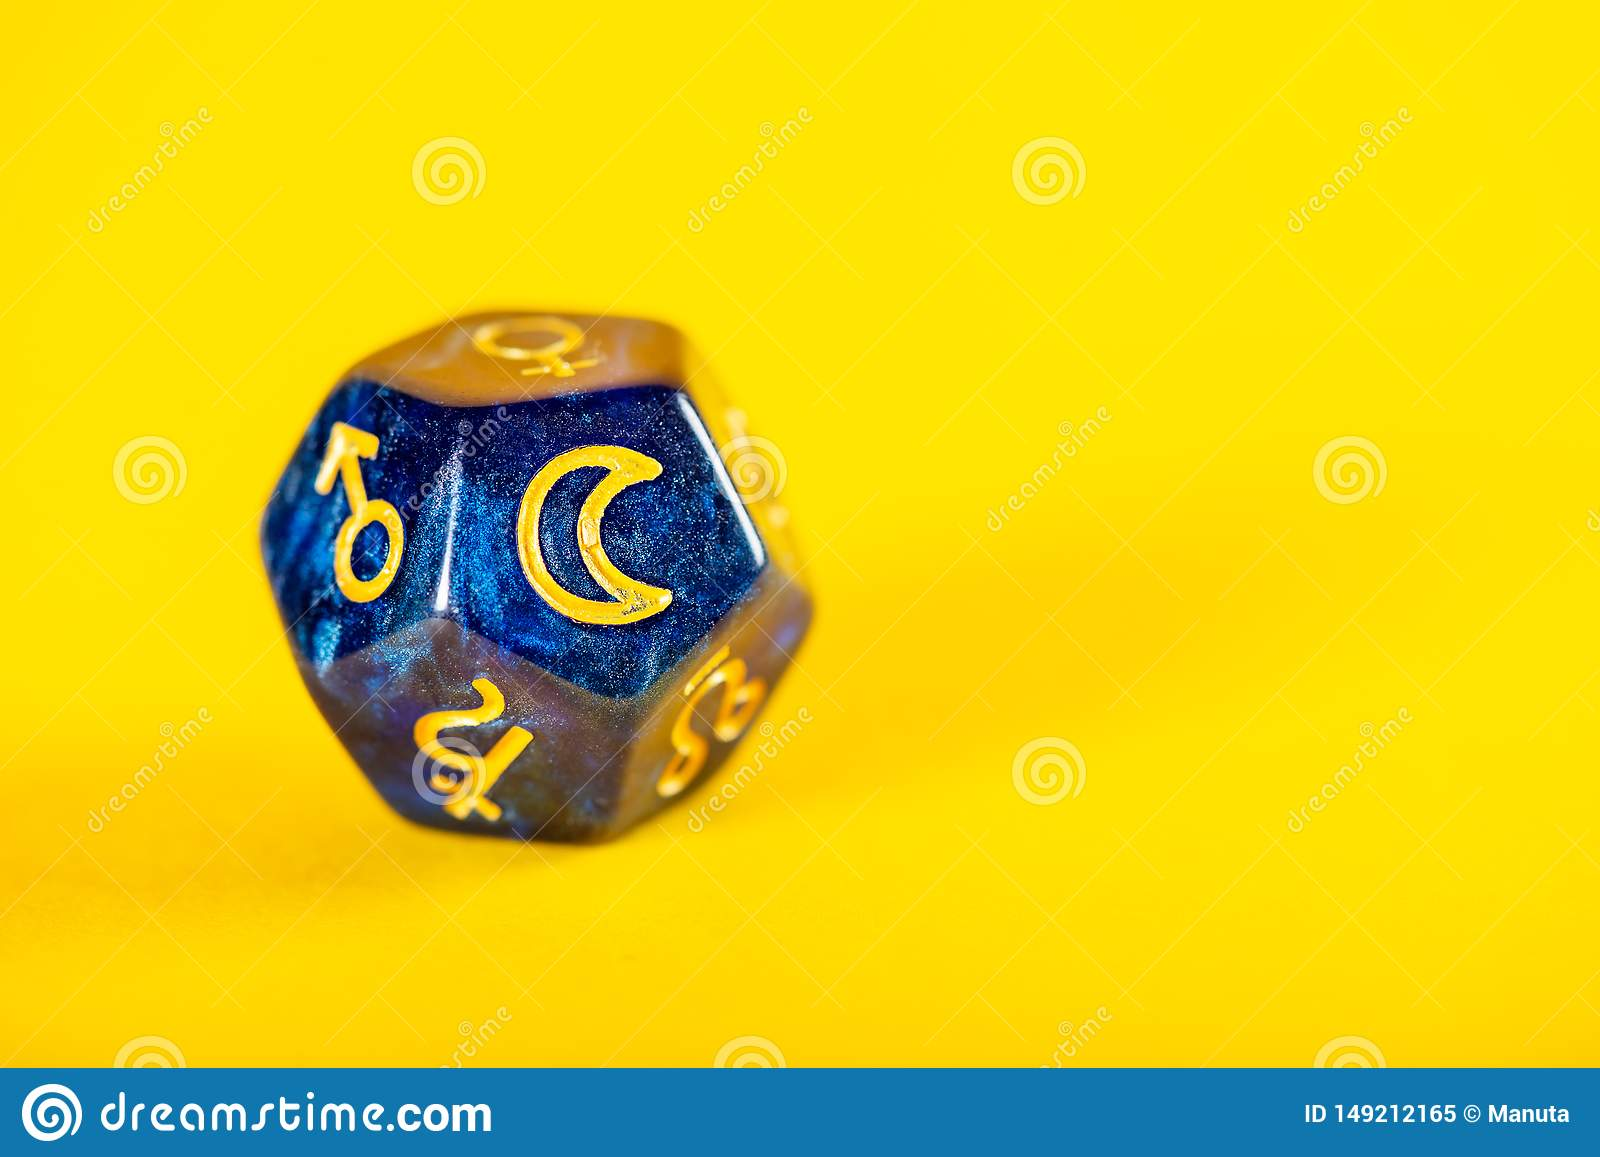 Astrology Dice With Symbol Of The Moon Stock Image Image Of Sagittarius Future 149212165